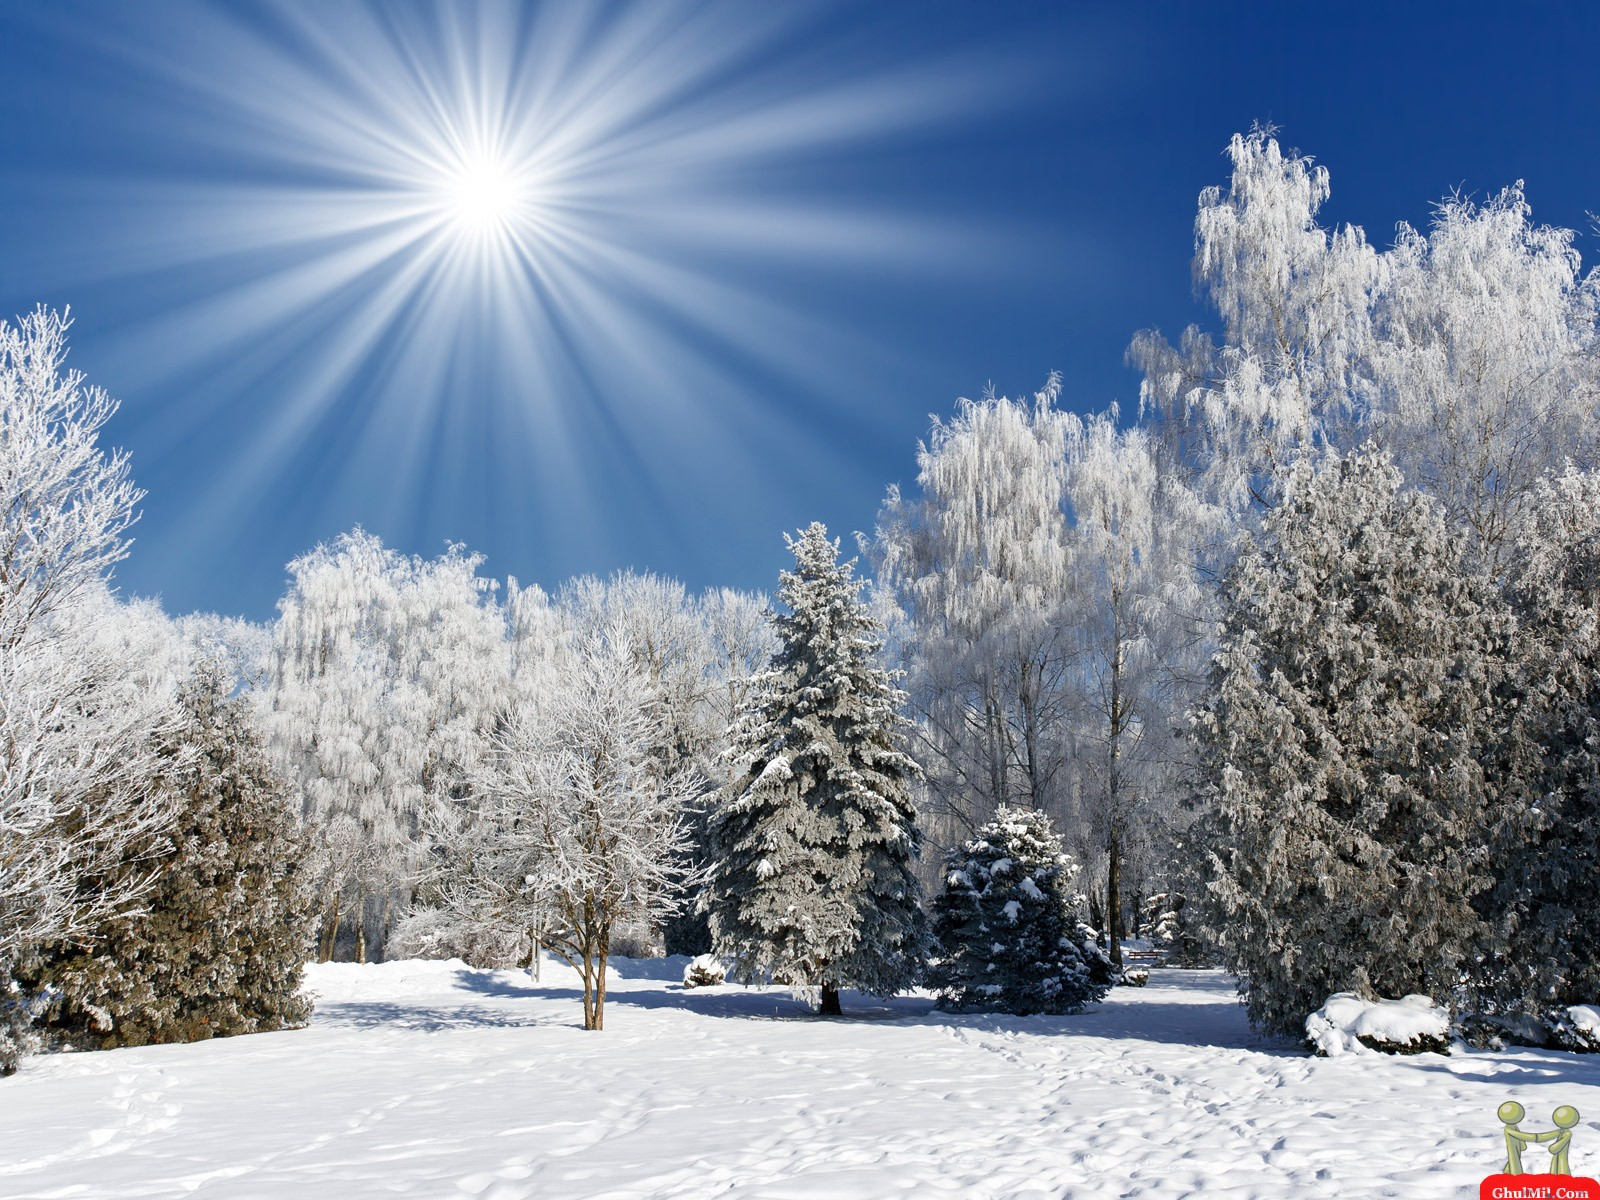 Sun Shines On Snow Trees Nature Wallpaper HD Wallpapers 1600x1200